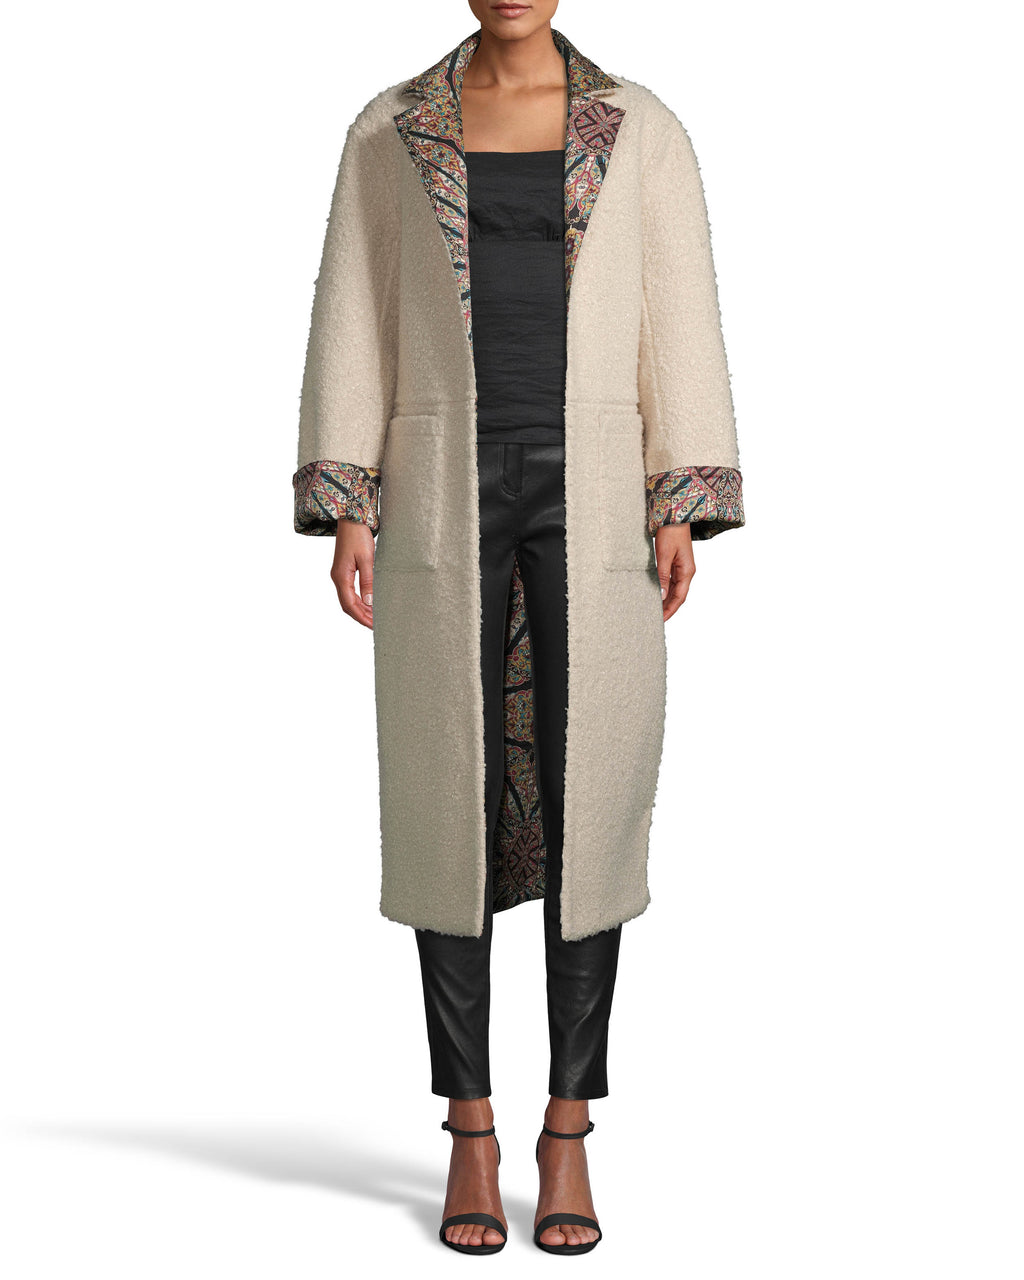 Labyrinth Printed Reversible Coat